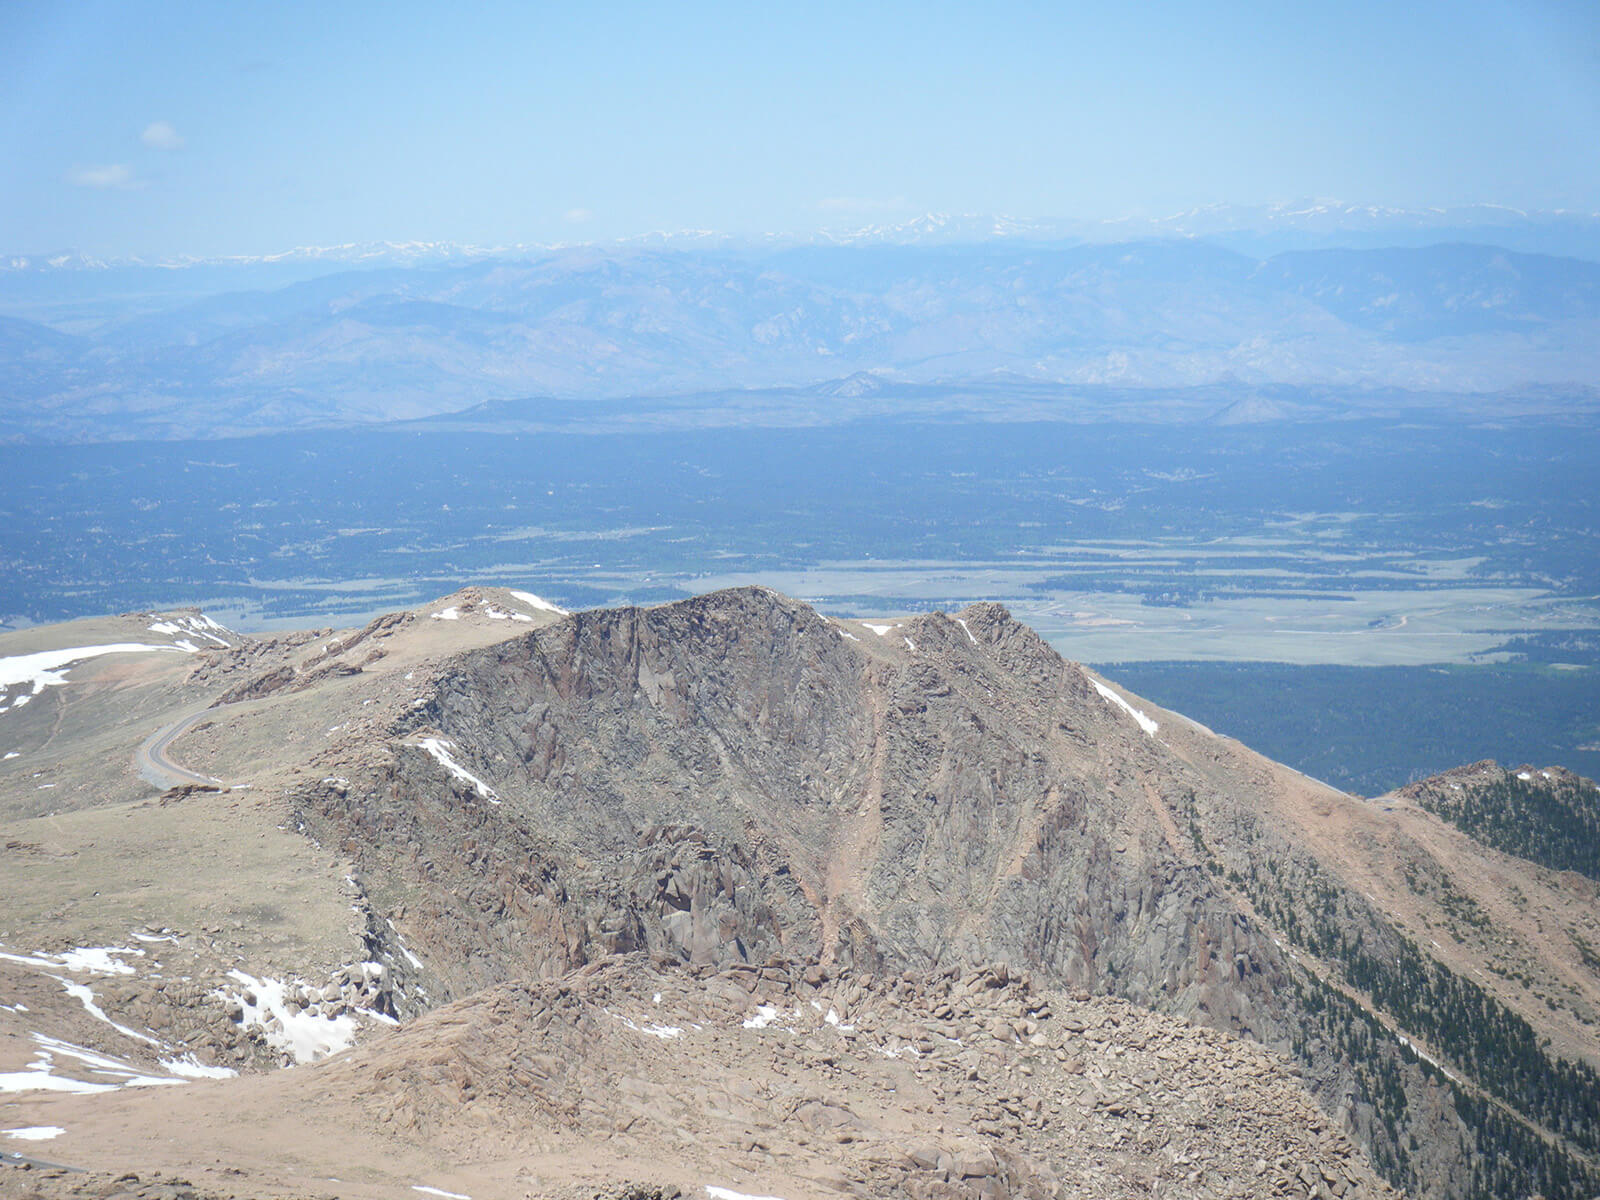 View from the summit of Pike's Peak in Colorado, over 14,000 feet above sea level